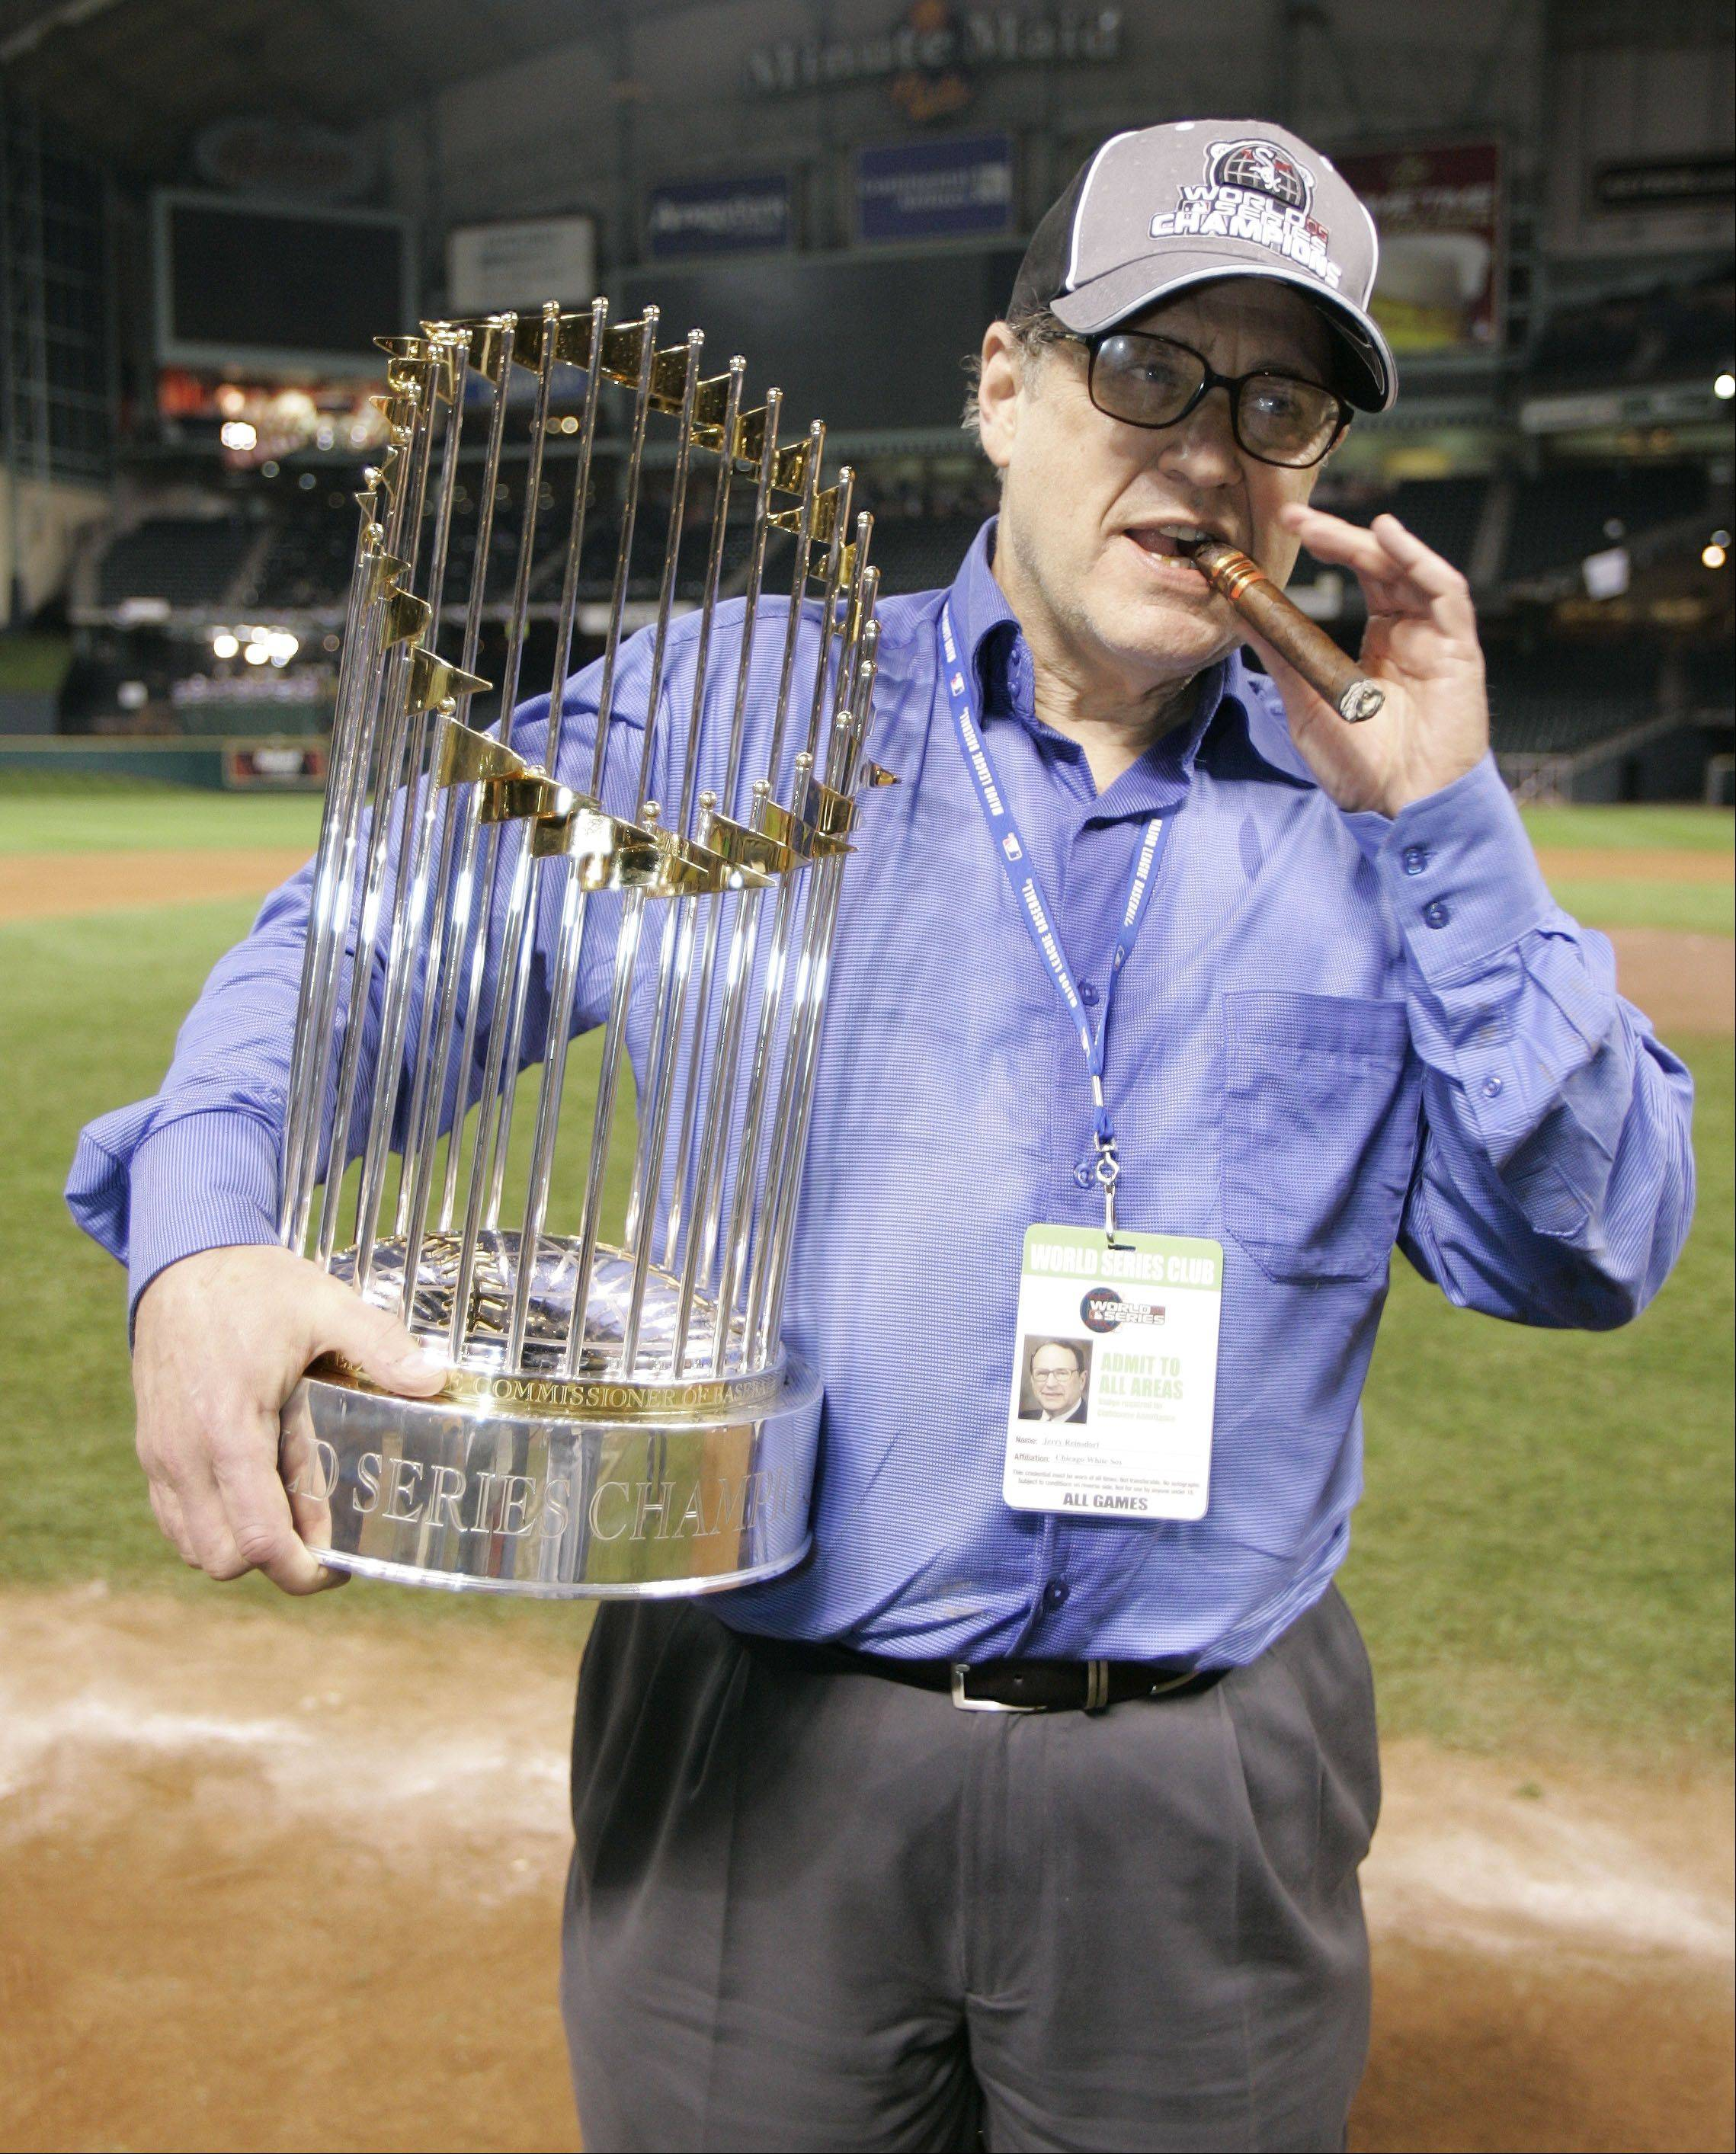 Jerry Reinsdorf with the 2005 World Series trophy